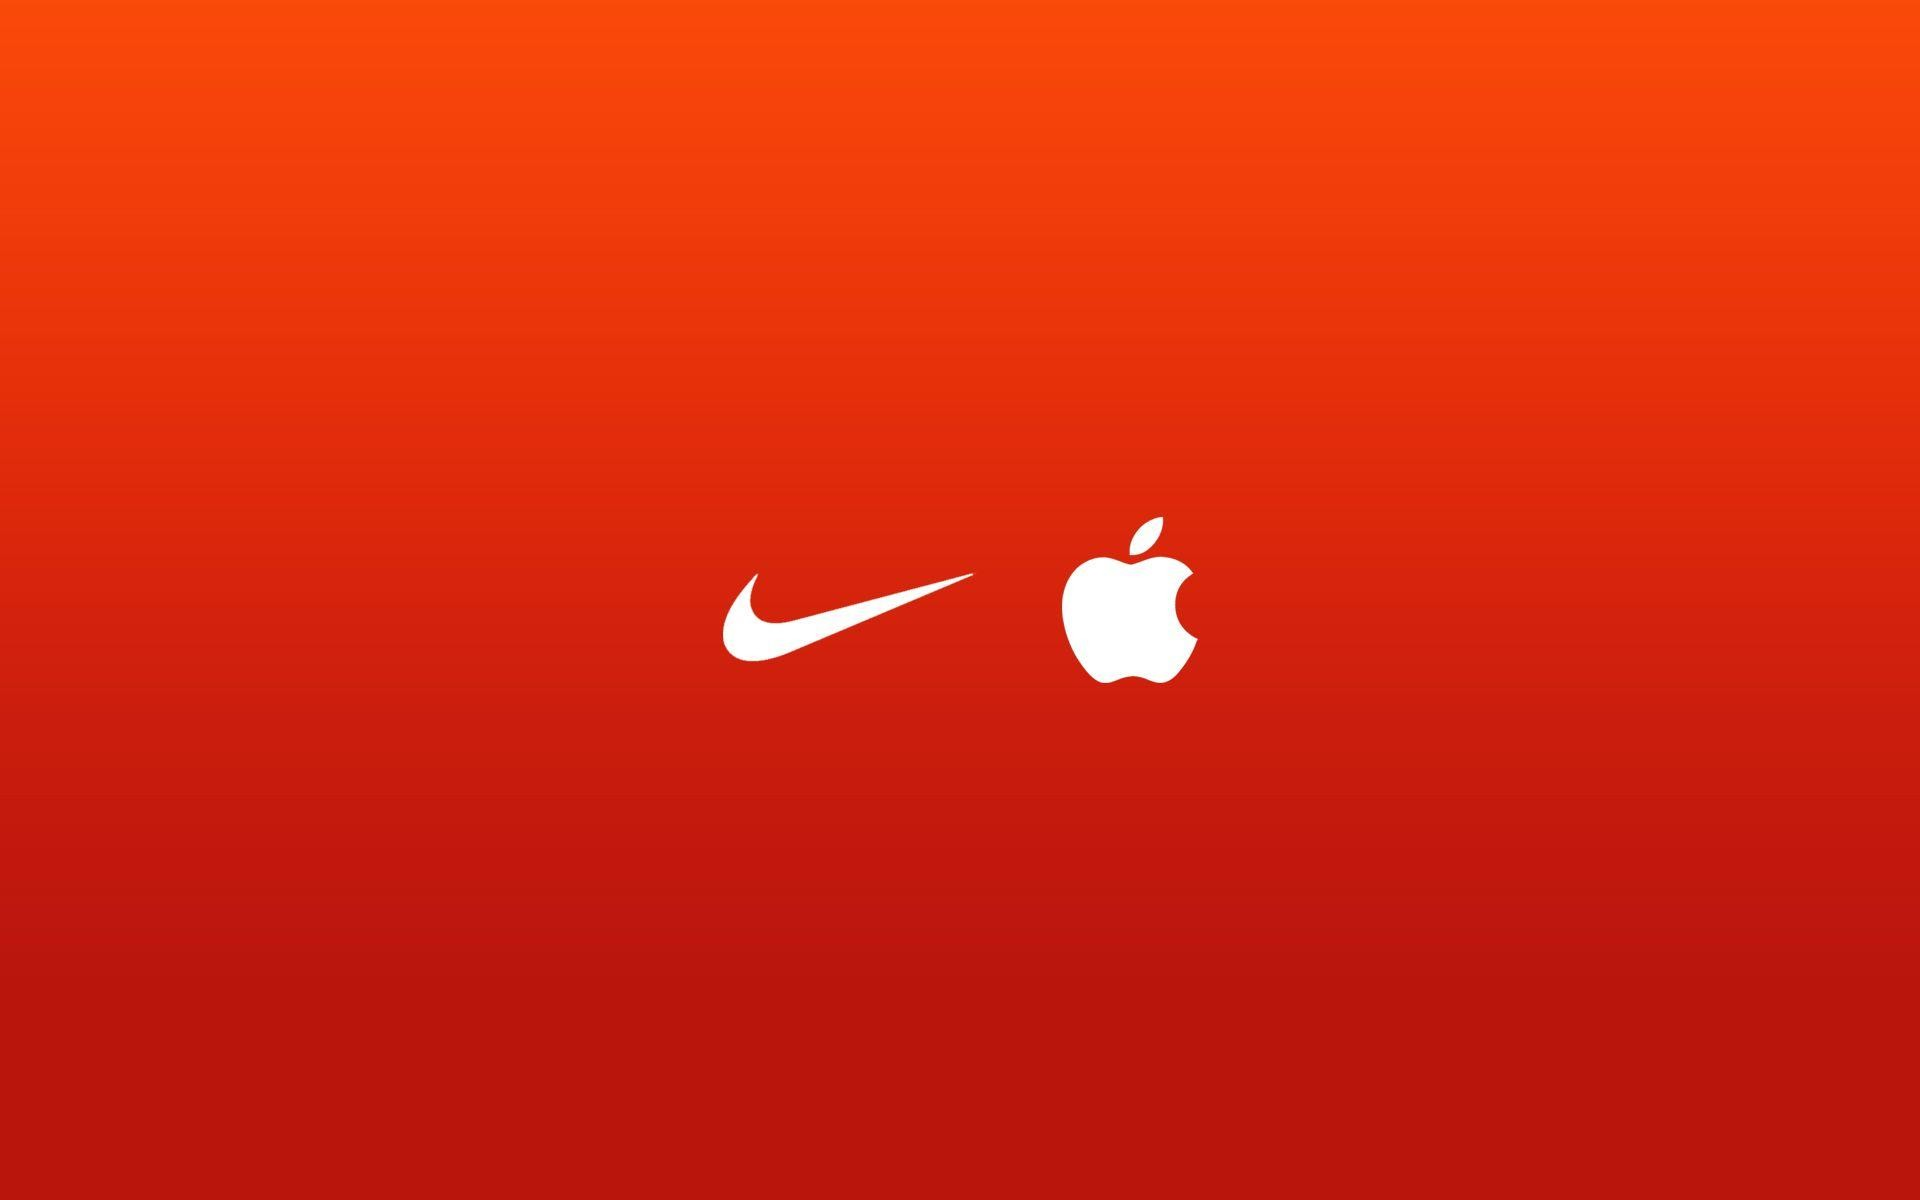 Nike Wallpapers for Girls 1920×1200